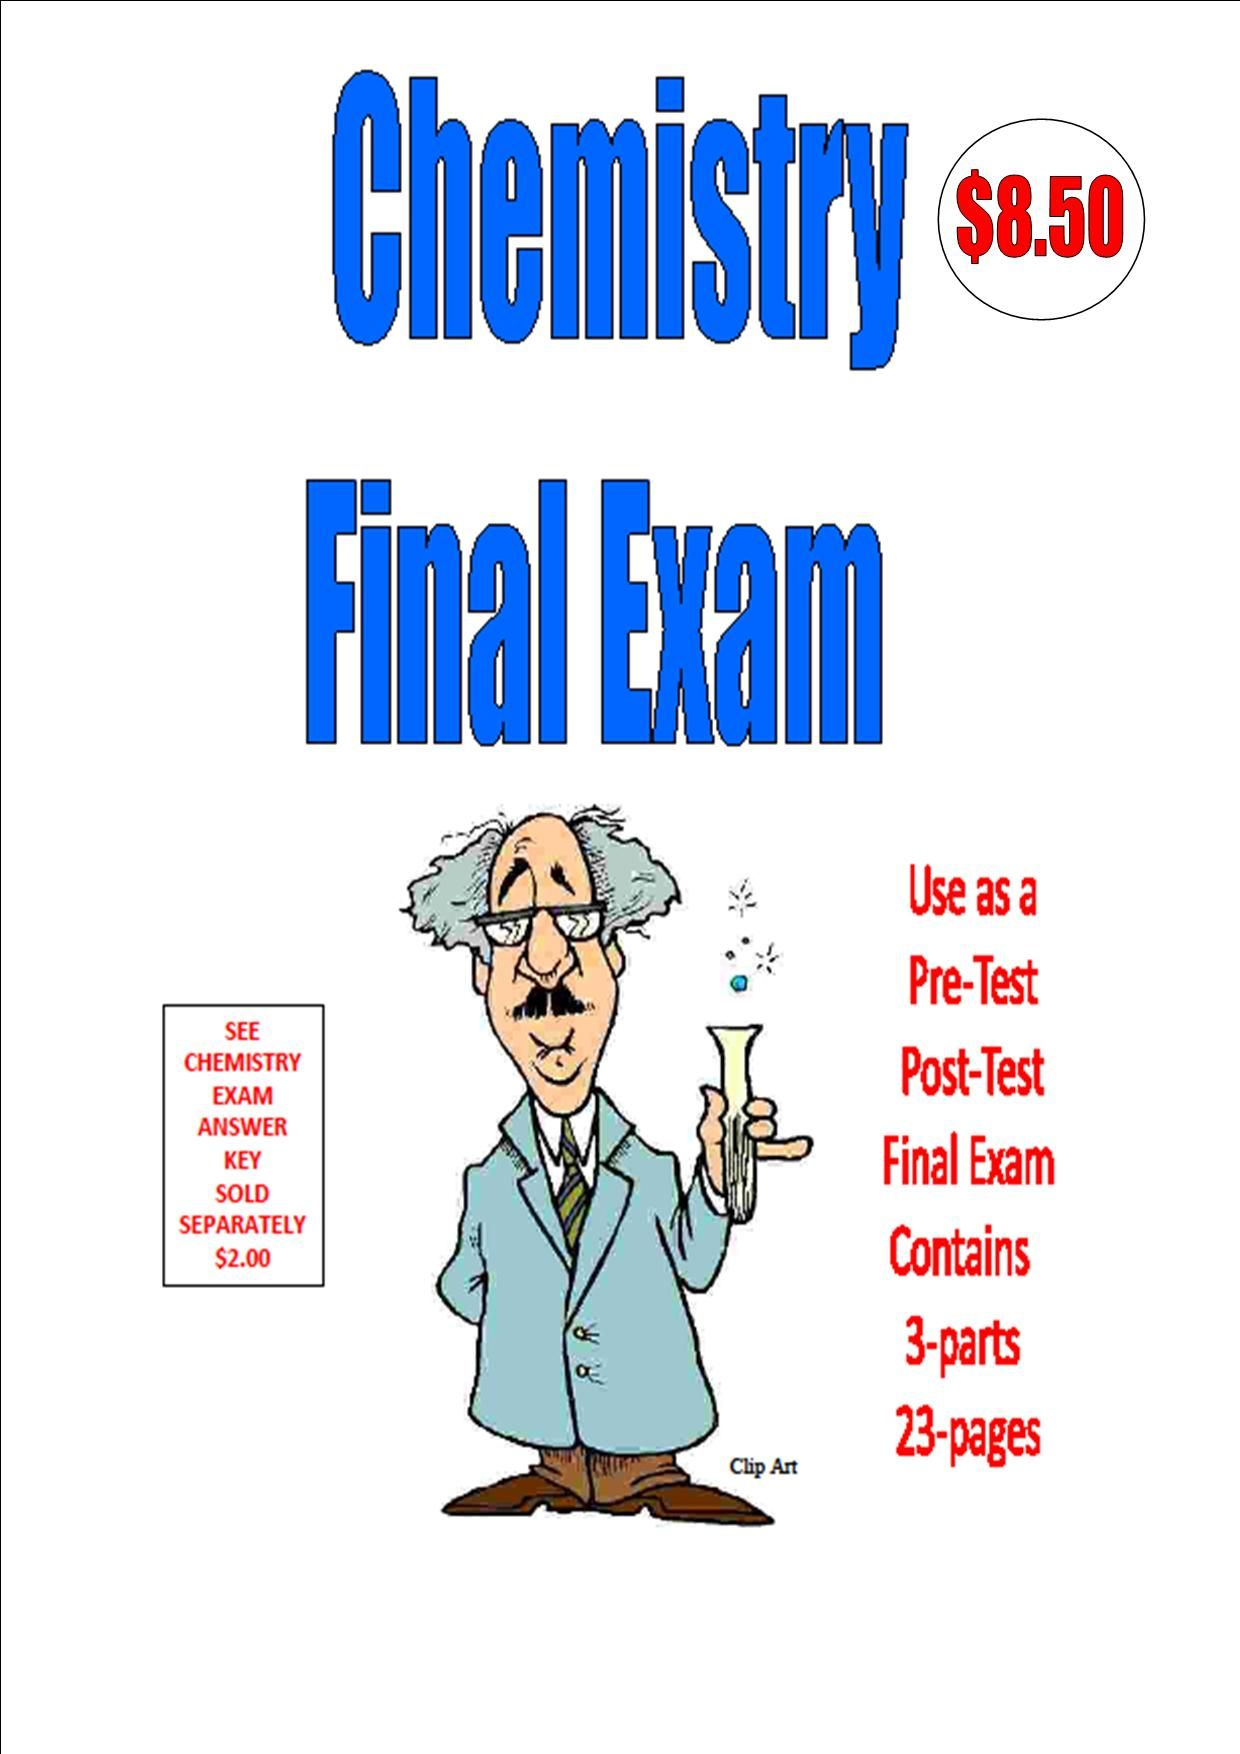 CHEMISTRY FINAL EXAM - 23-PAGES       3-PARTS       Use as a PRE